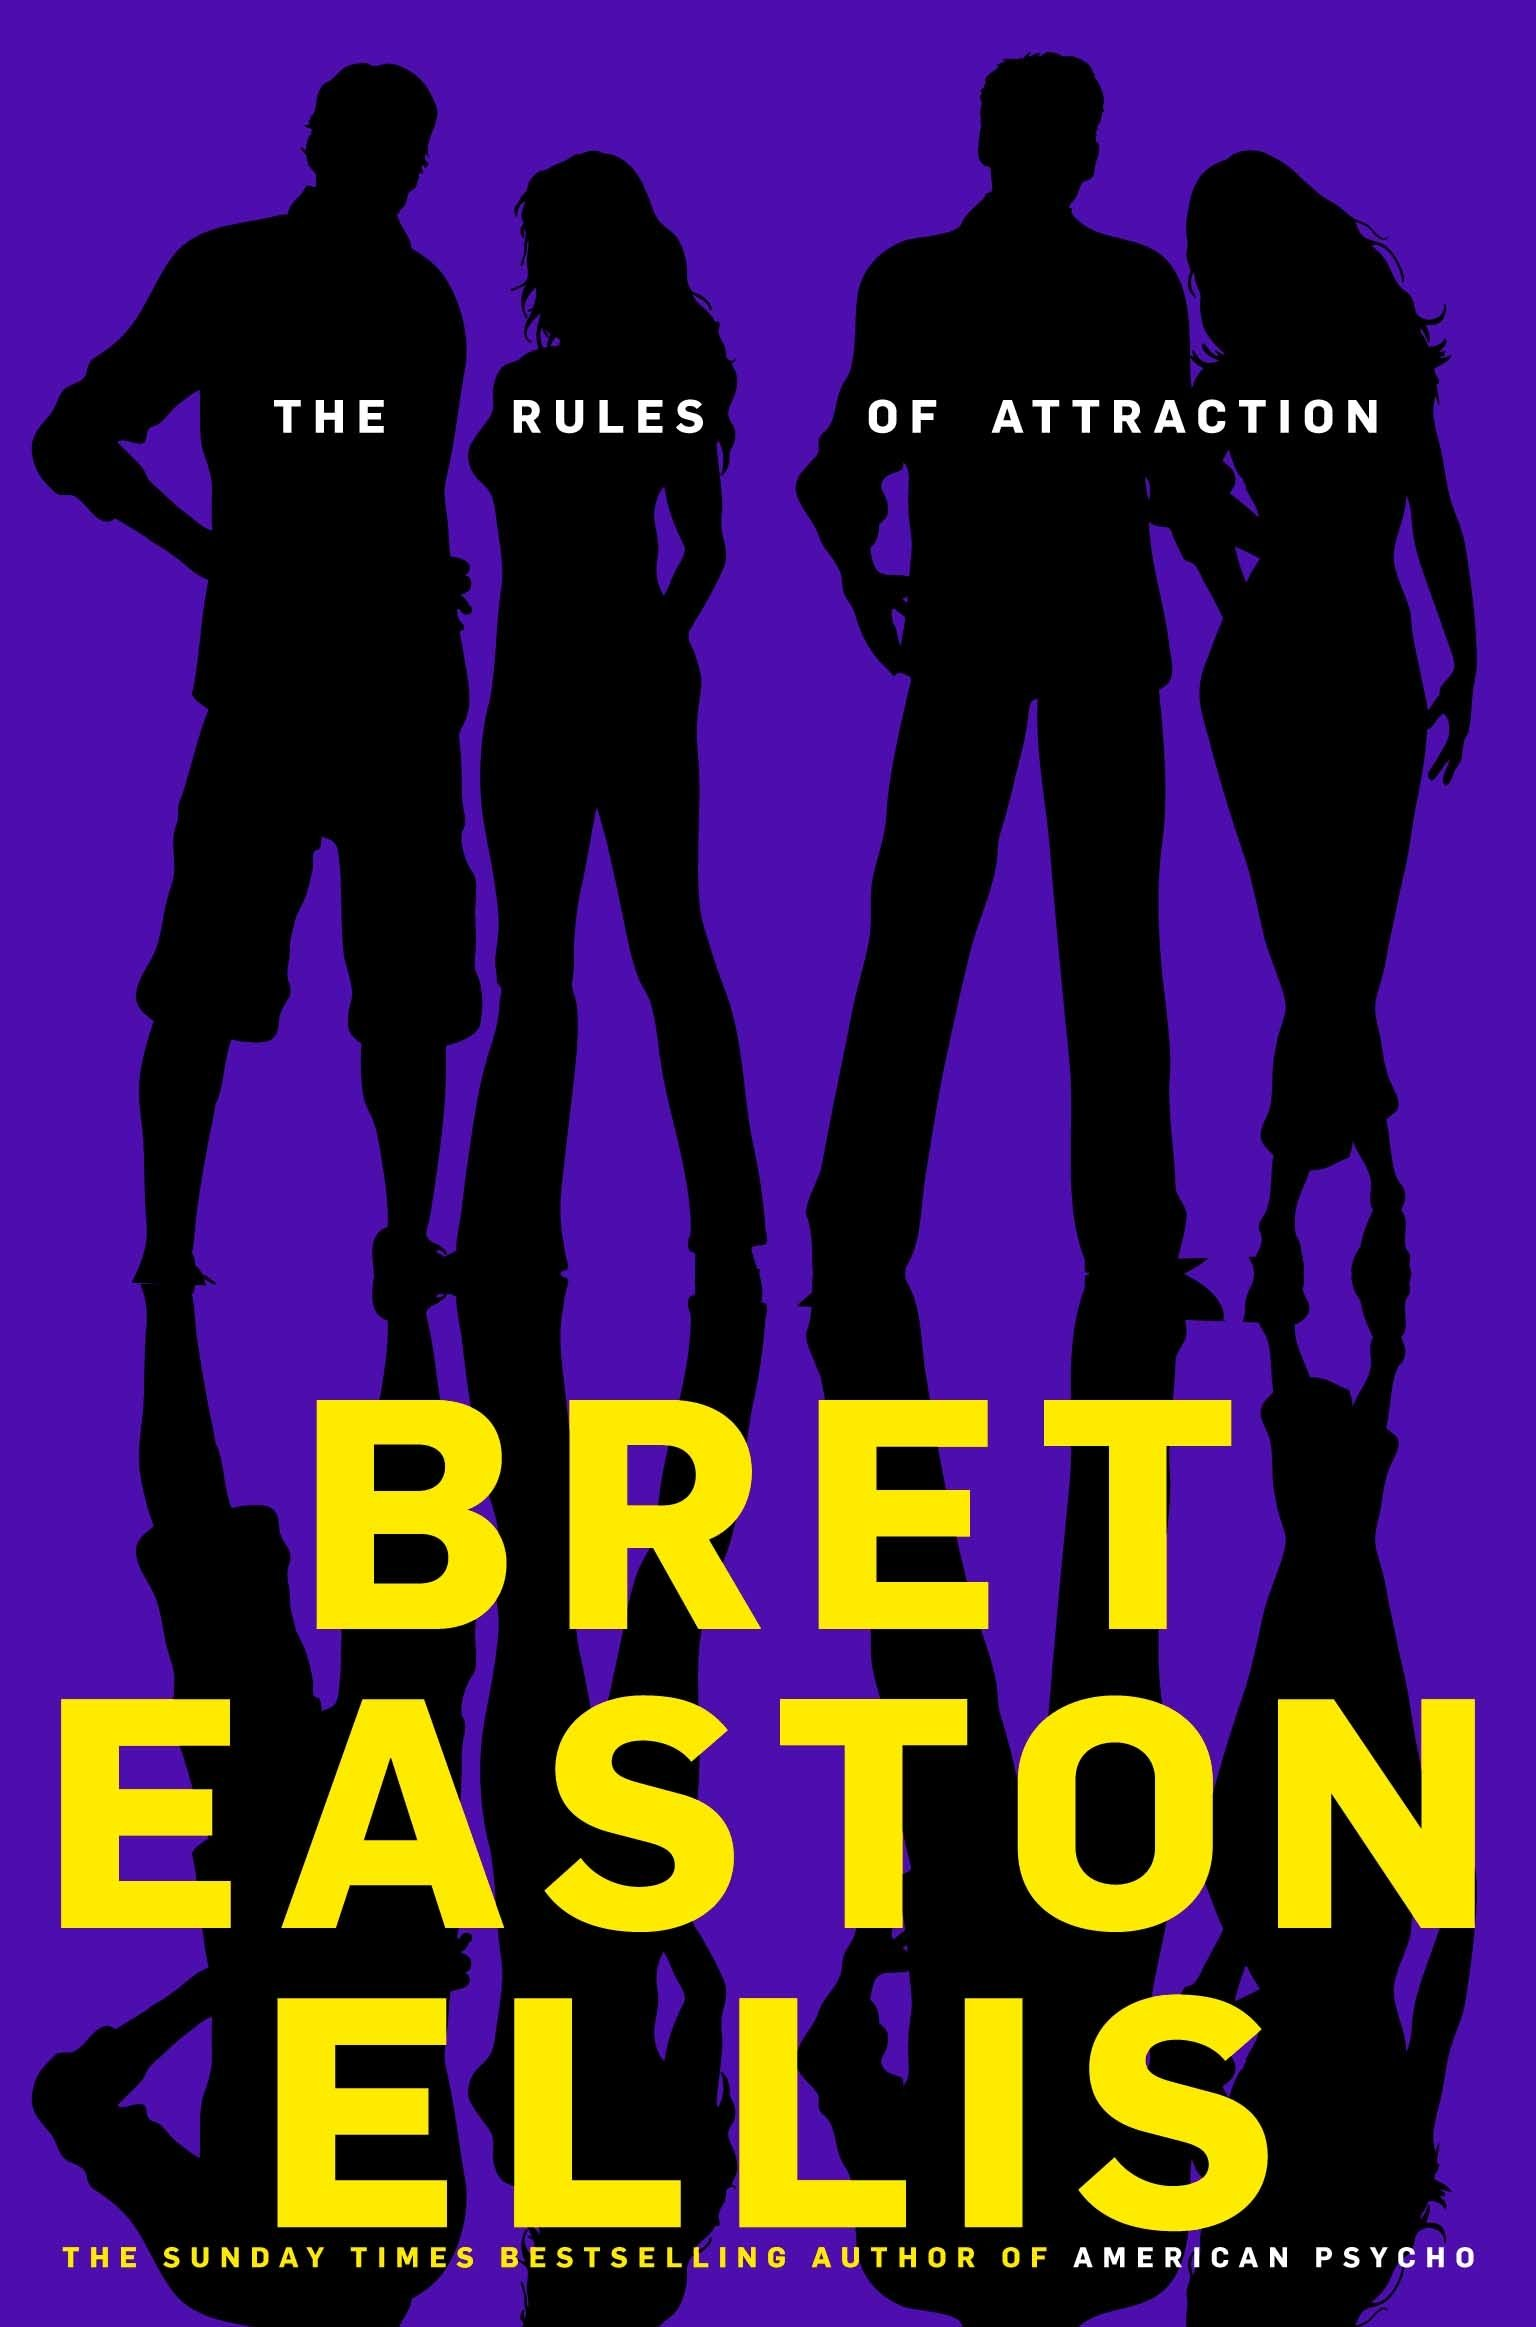 The Rules of Attraction. Imperial Bedrooms  Amazon co uk  Bret Easton Ellis  8601300209562